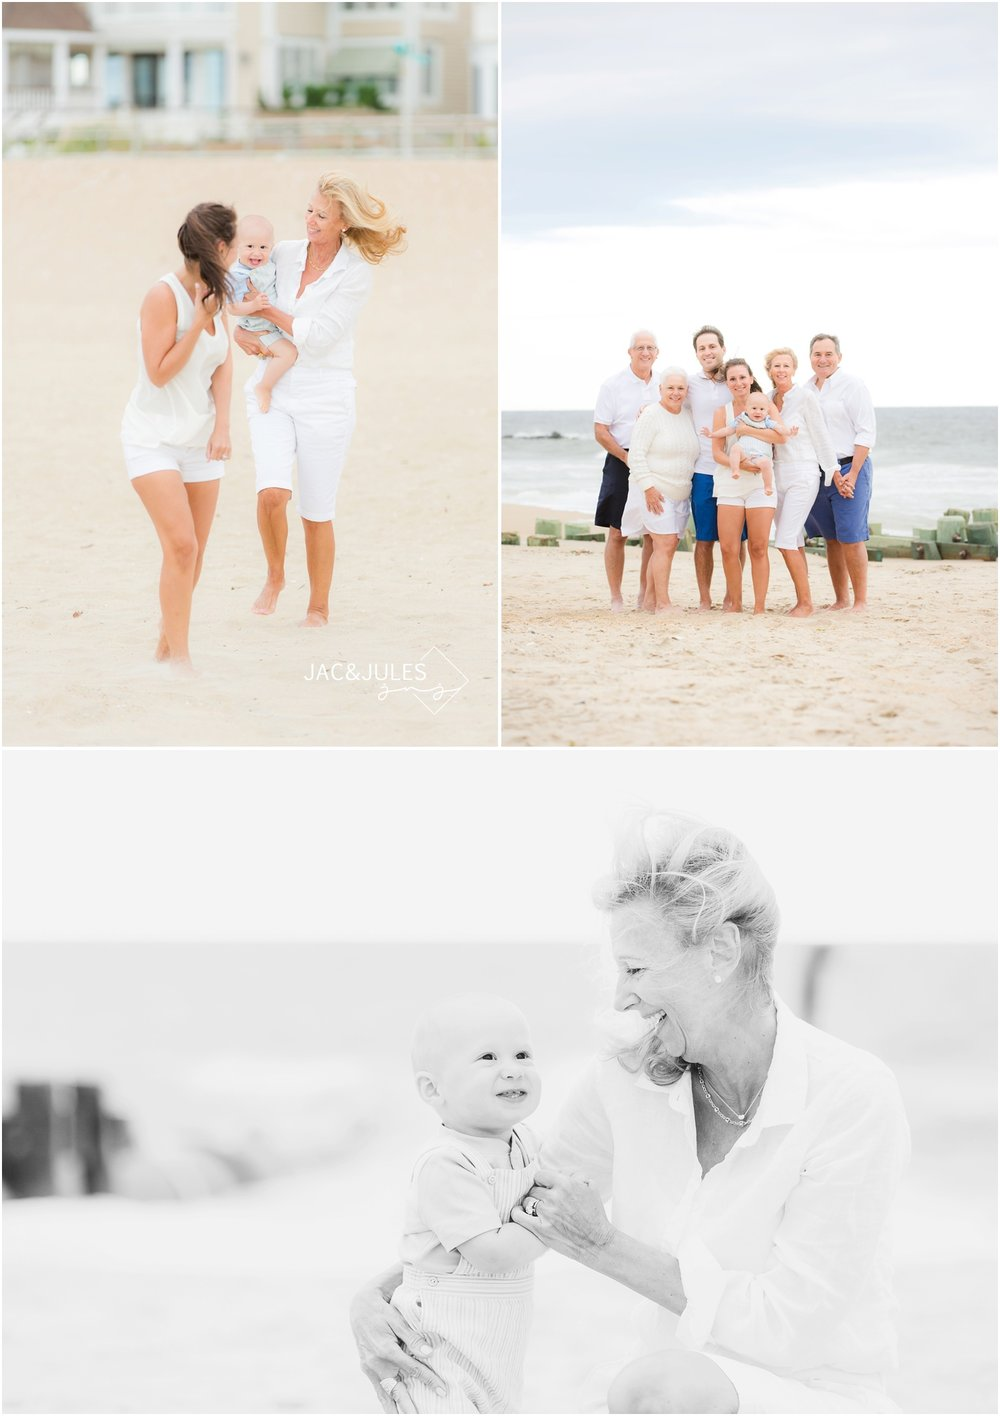 Family photos with grandparents on the beach in Sea Girt, NJ.